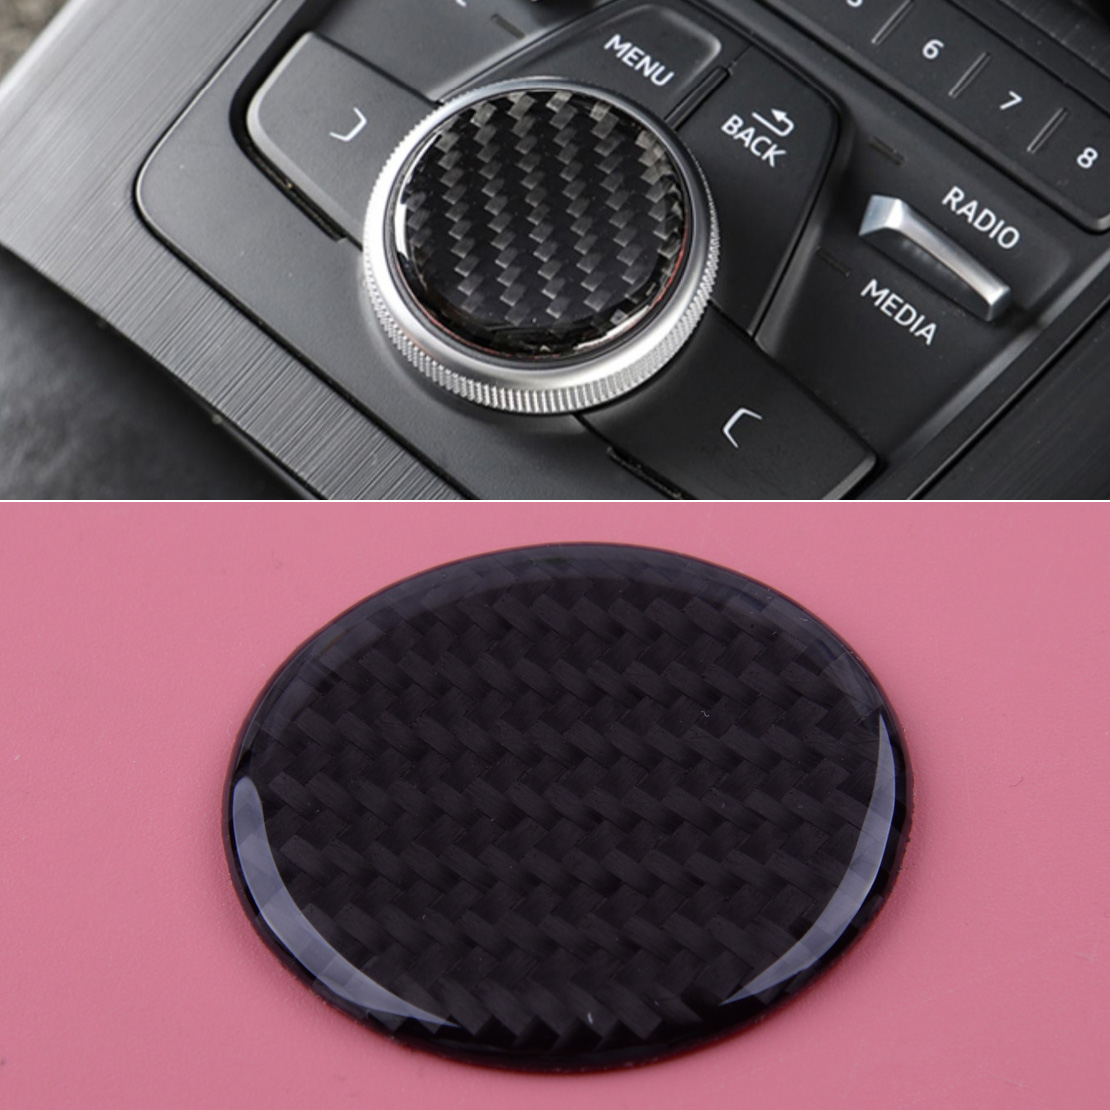 Carbon Fiber Black Car Multi-Media Control Knob Decor Sticker Fit For Audi A3 S3 8V 2014 2015 2016 2017 2018 2019 image